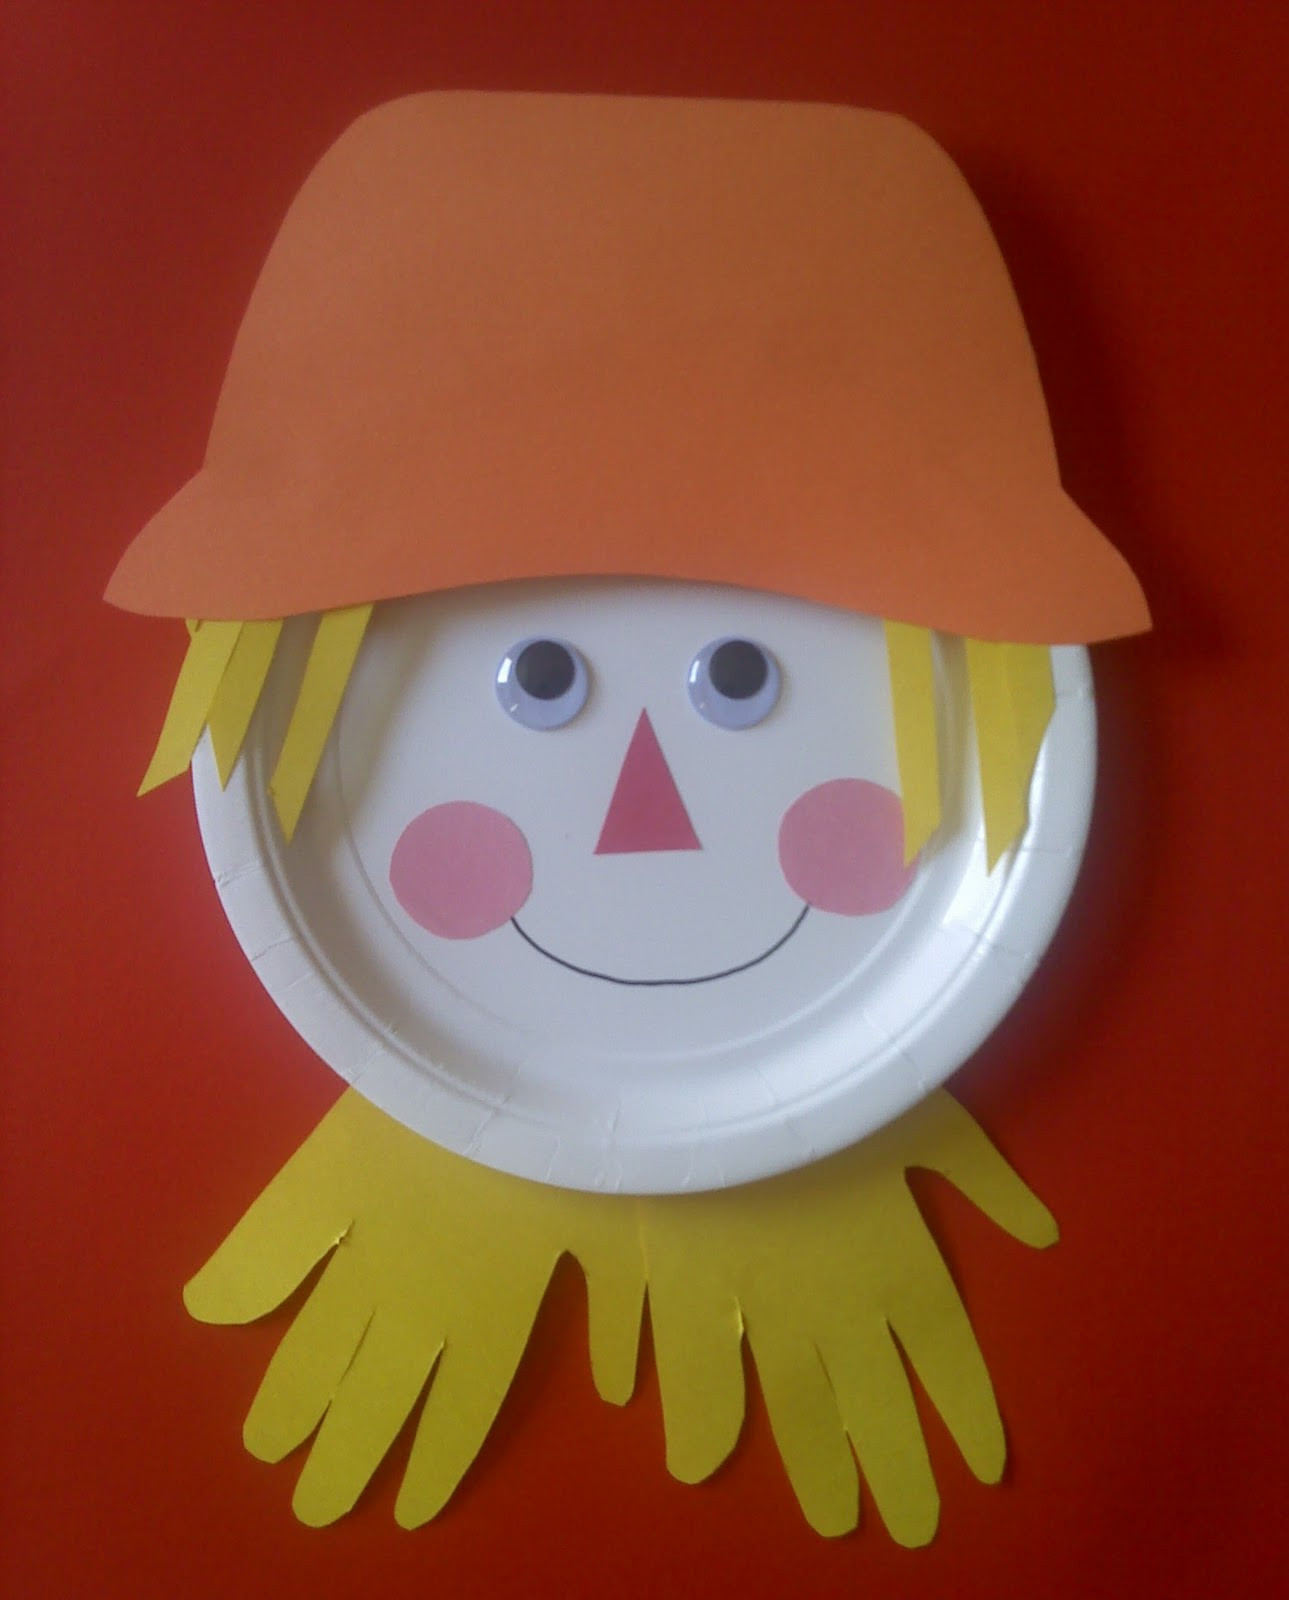 Fall Craft Ideas For Preschool  Crafts For Preschoolers Fall Crafts Cooking